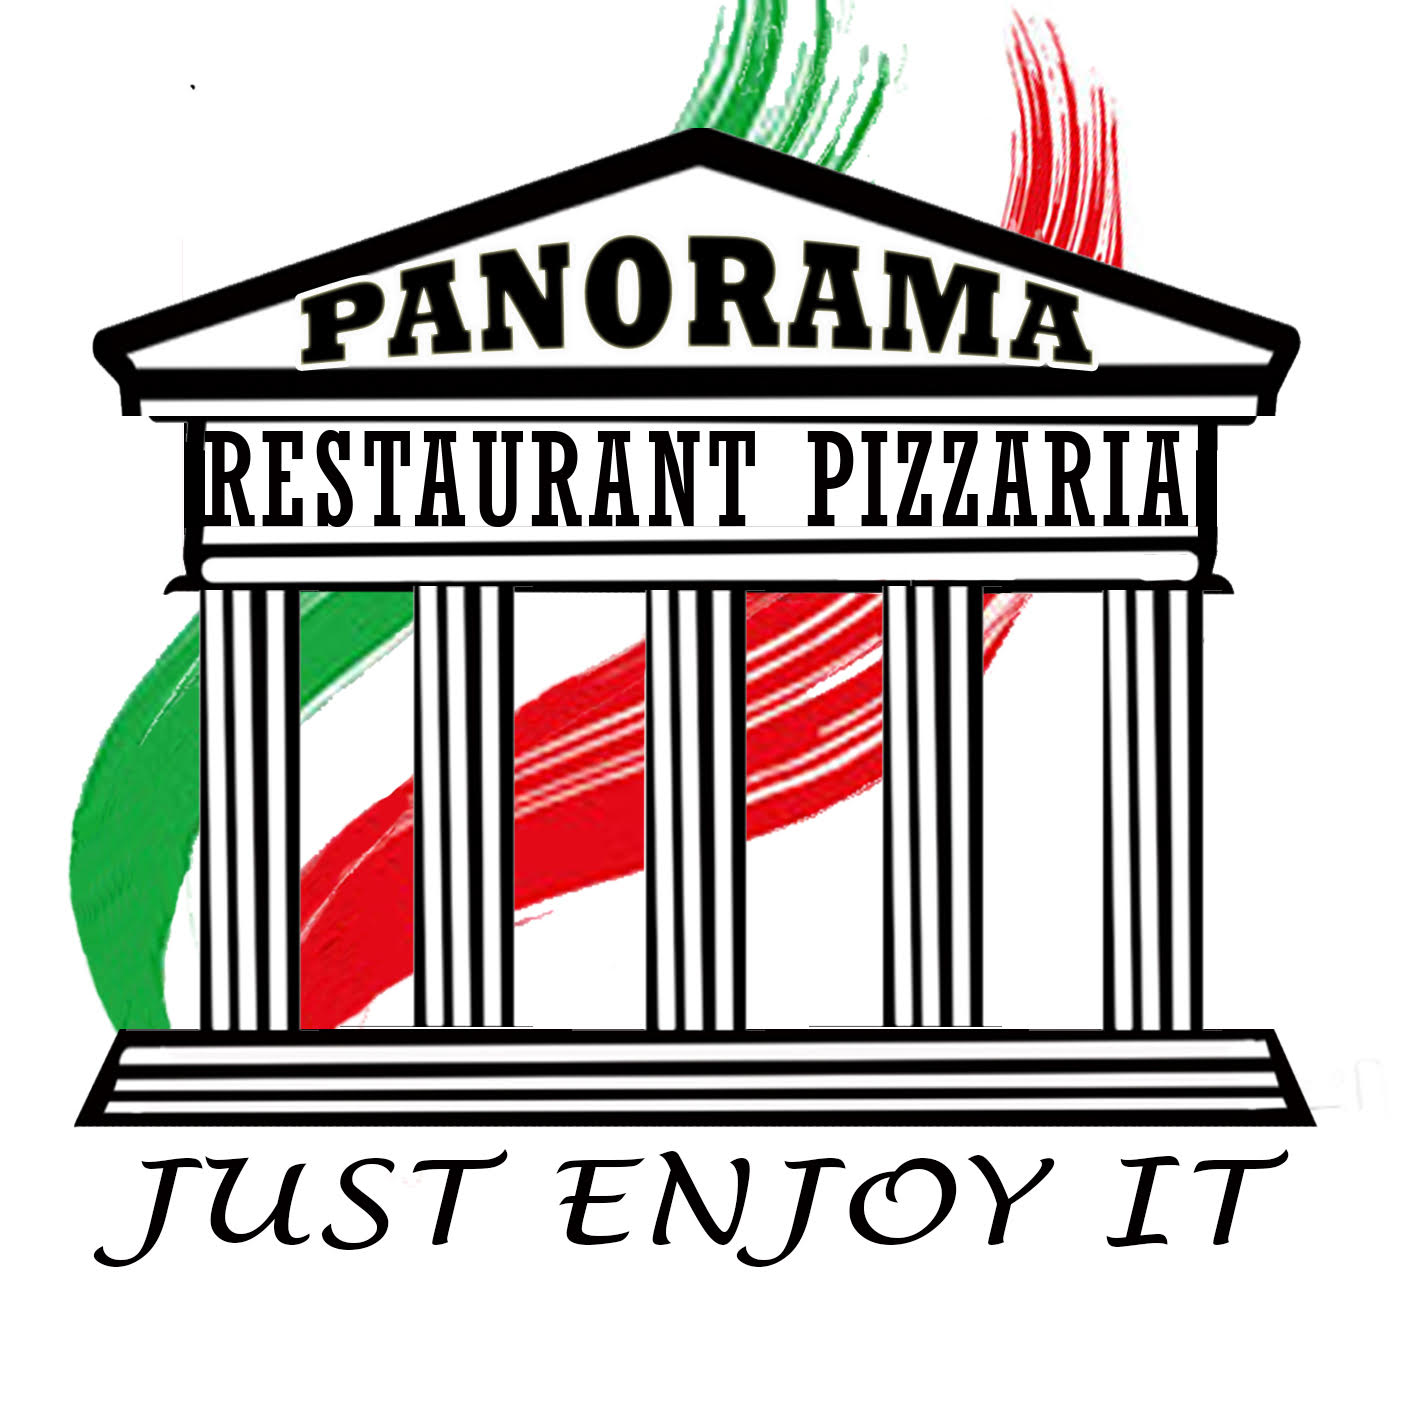 Restaurant Pizzeria Panorama